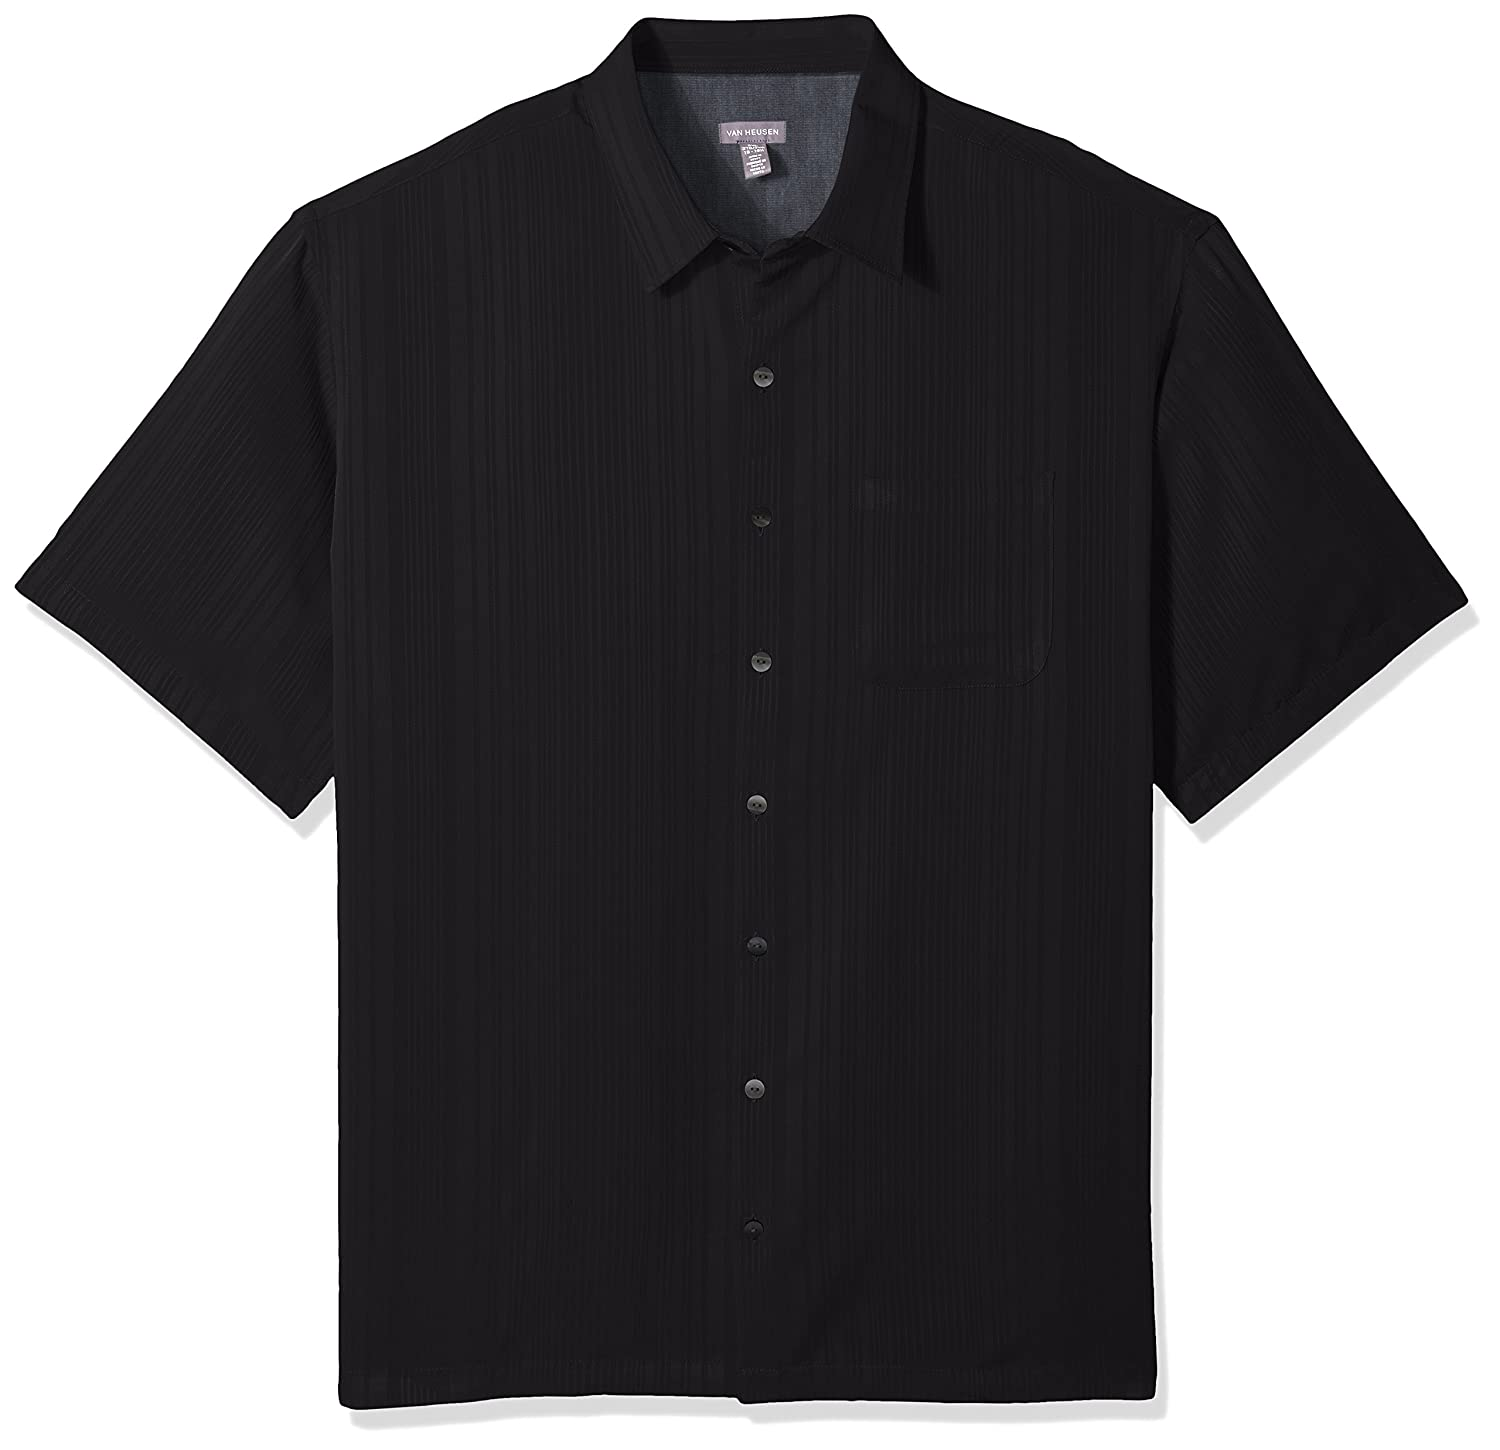 Van Heusen Mens Big and Tall Jacquard Short Sleeve Polo 50W5962